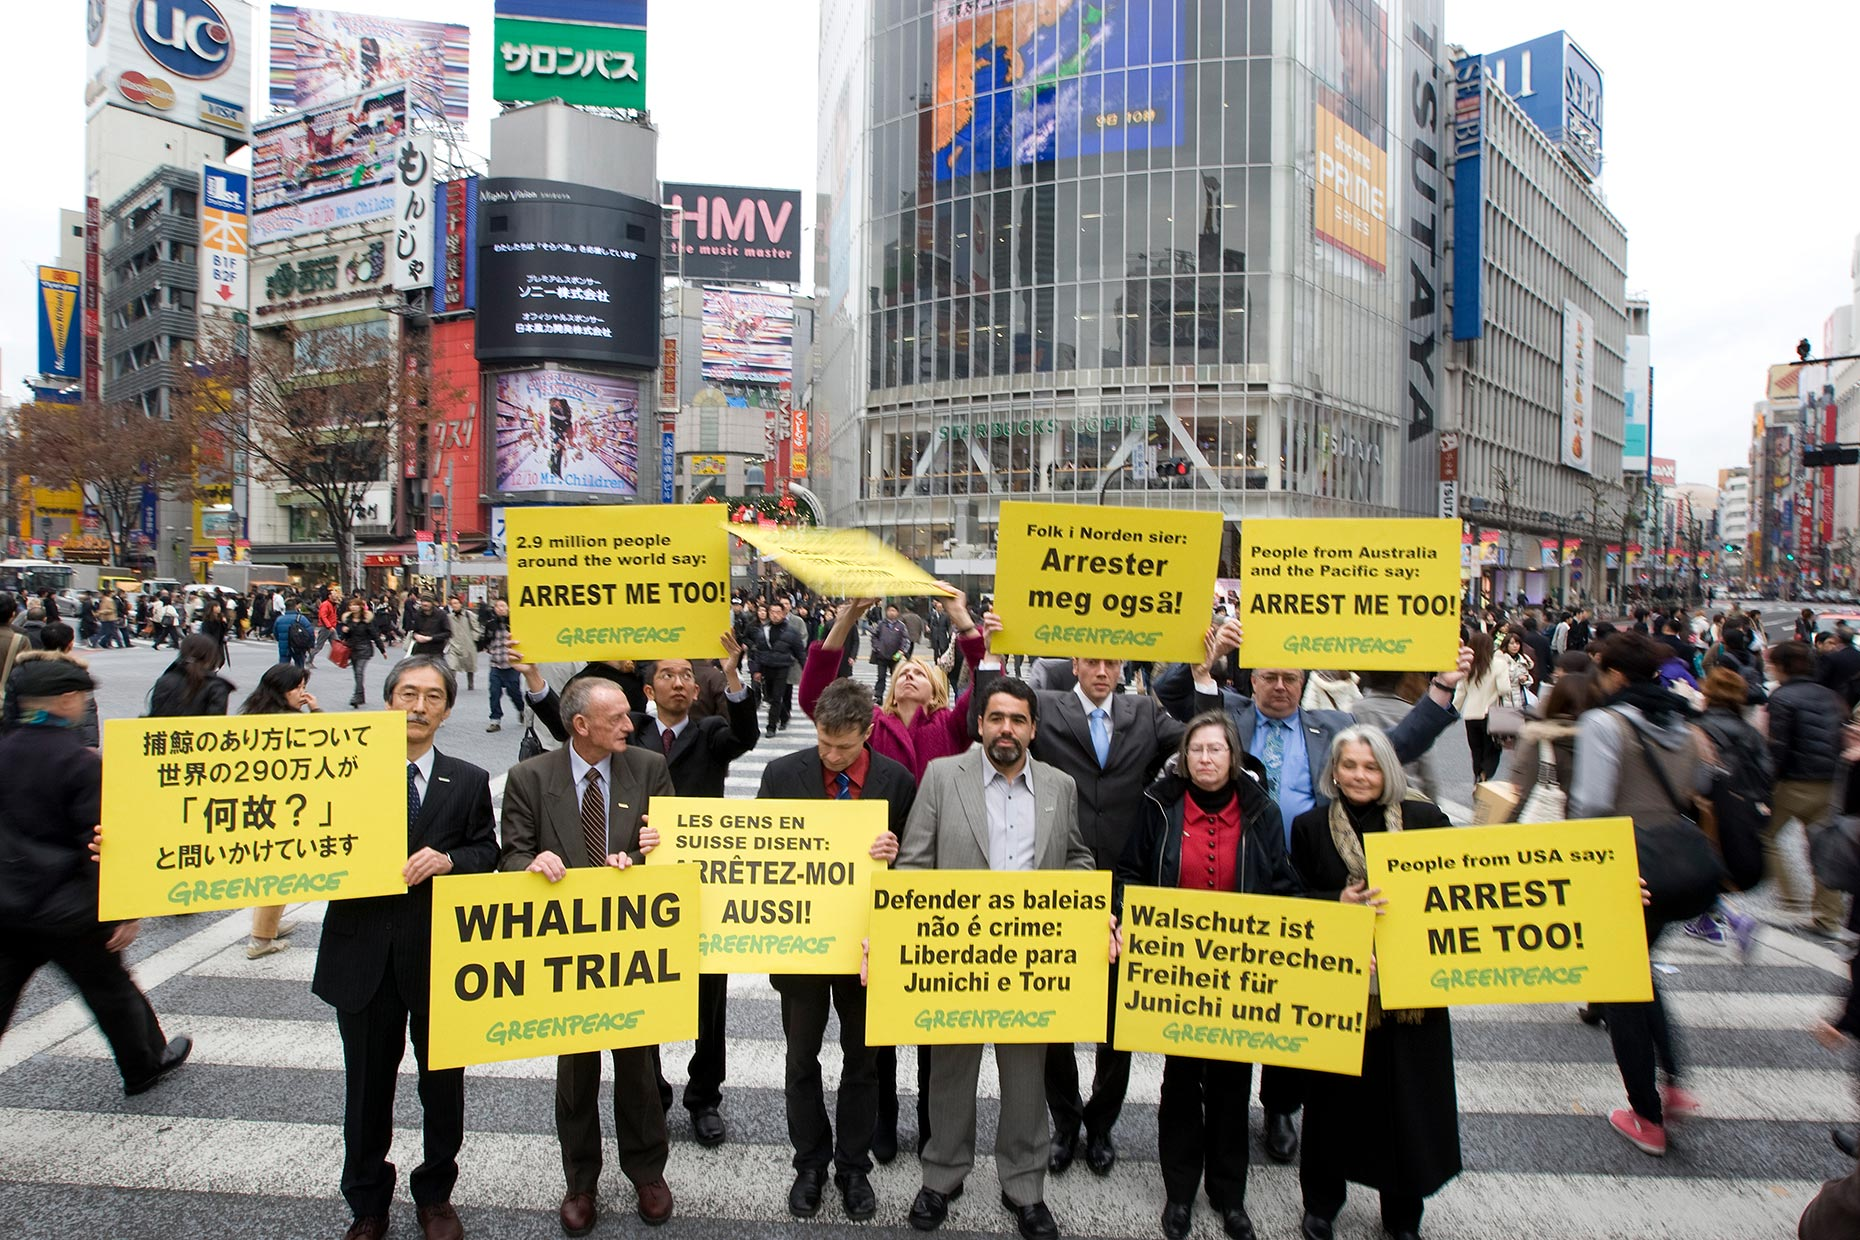 Greenpeace protest in Tokyo, by Scotland photographer